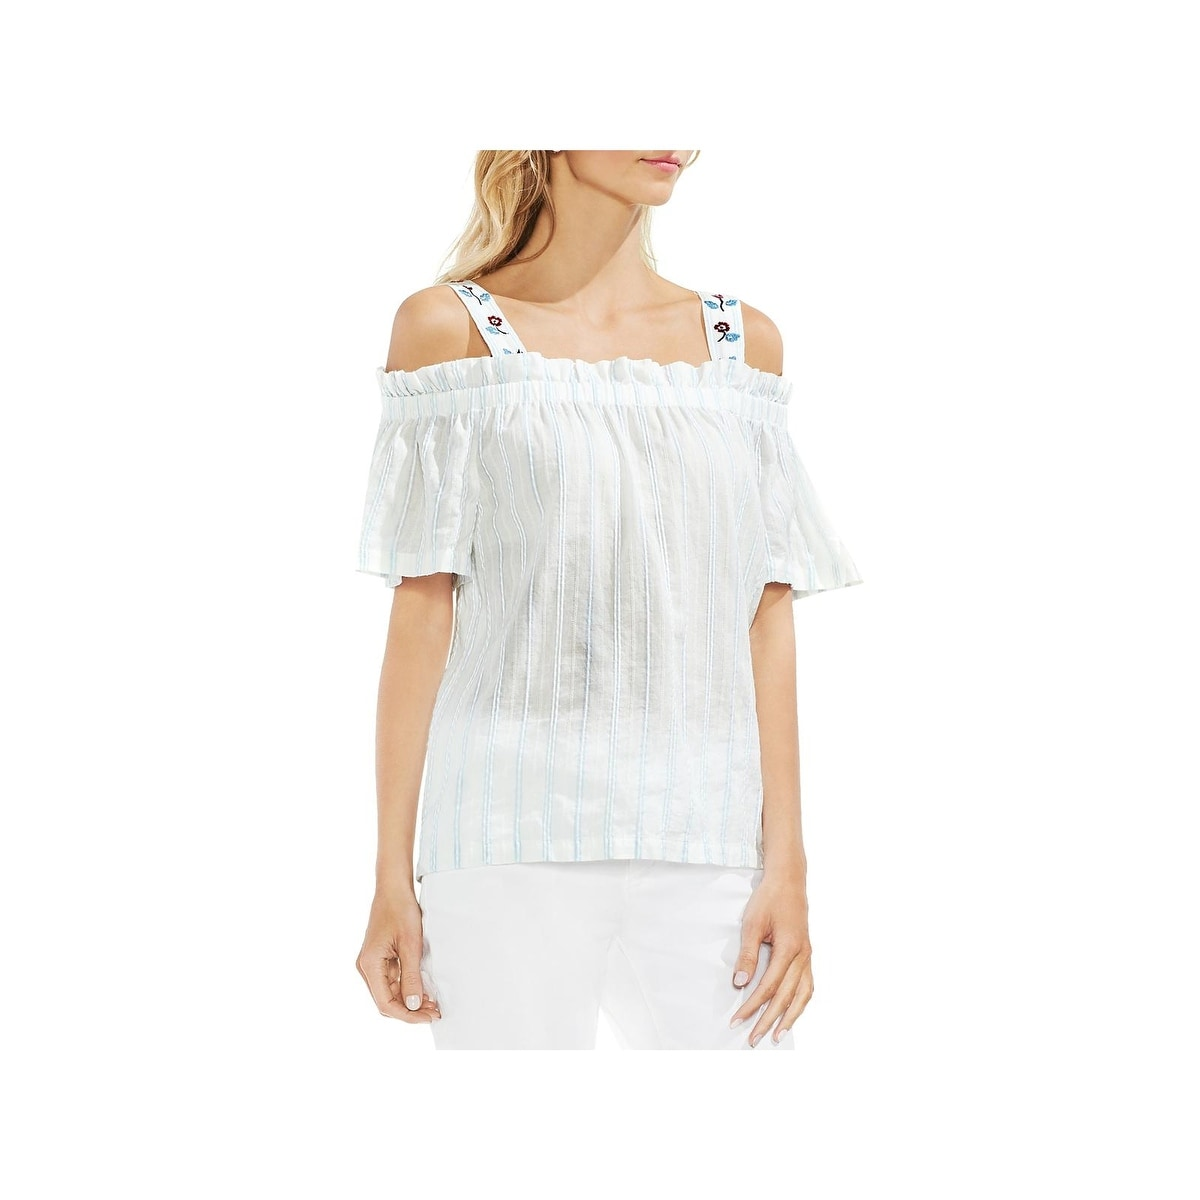 80e7e987c4e4 Vince Camuto Tops   Find Great Women's Clothing Deals Shopping at Overstock